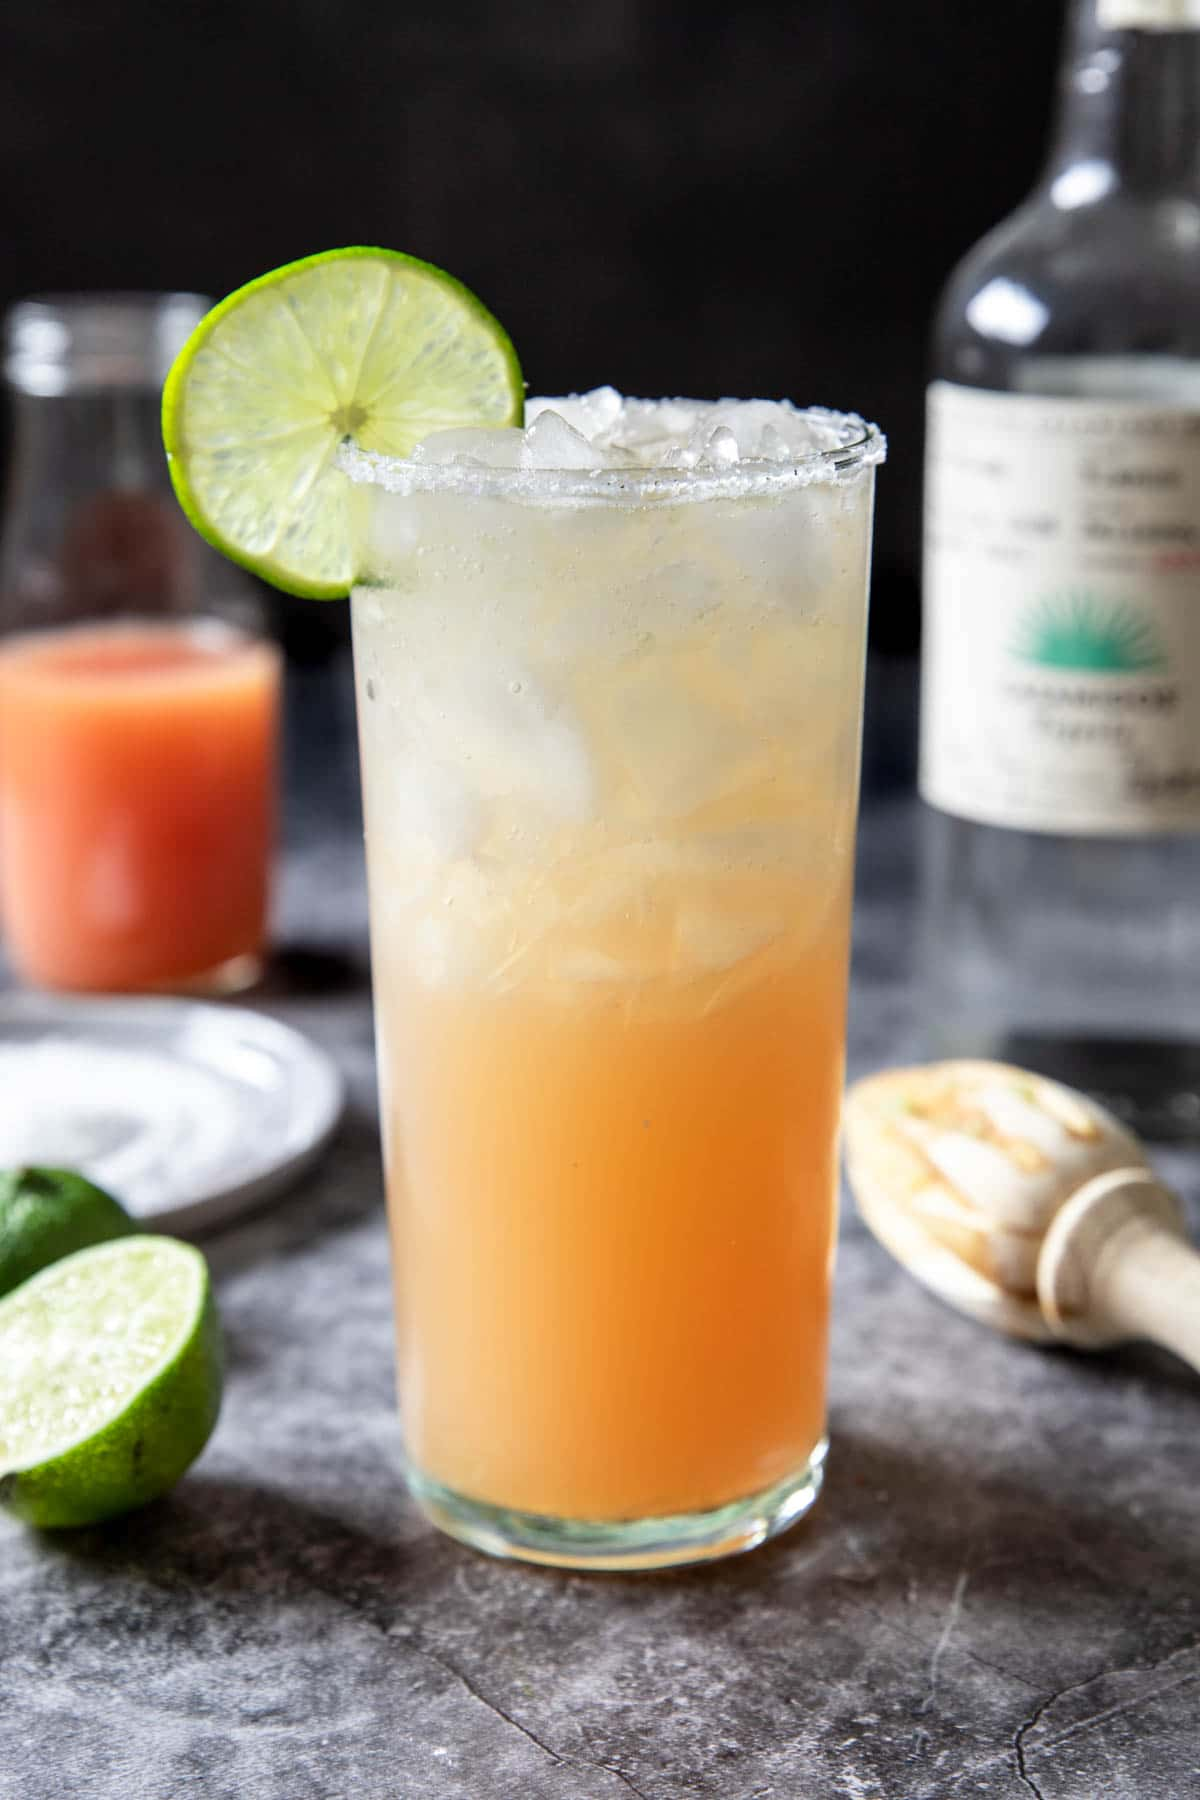 Paloma in a tall glass with a lime on the side